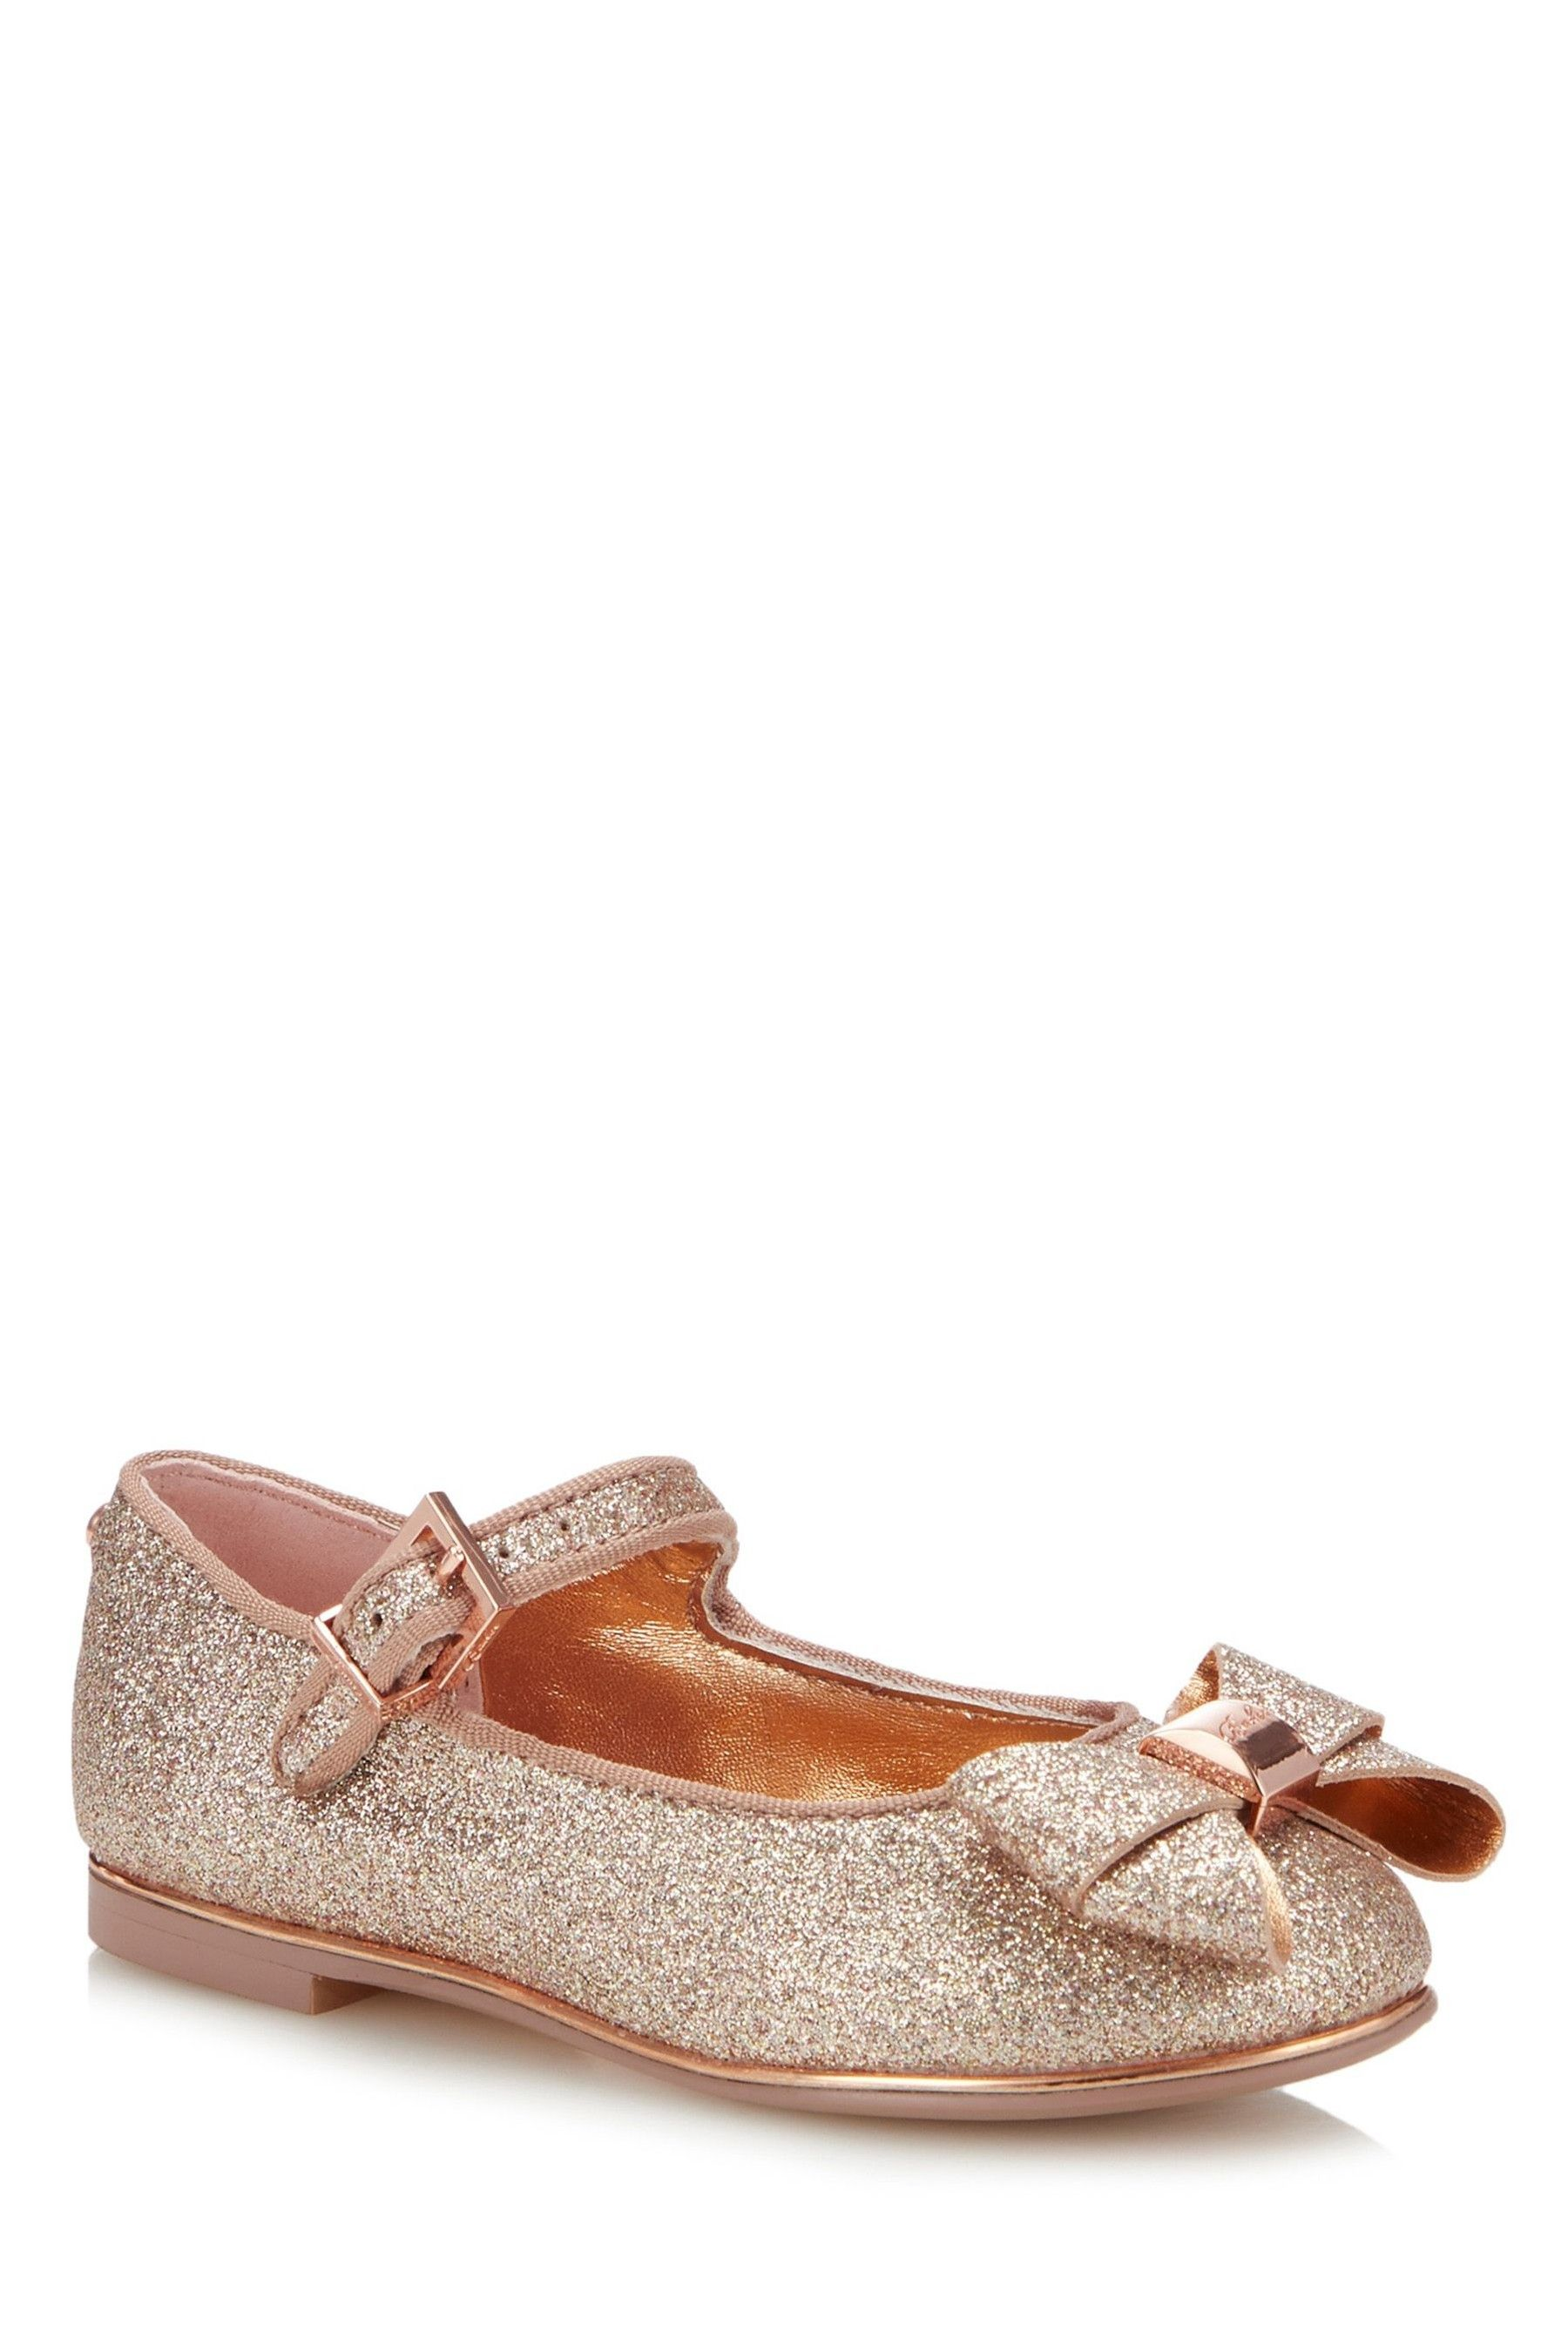 Buy Rose Gold Bow Leather Sandals (Younger Girls) from Next